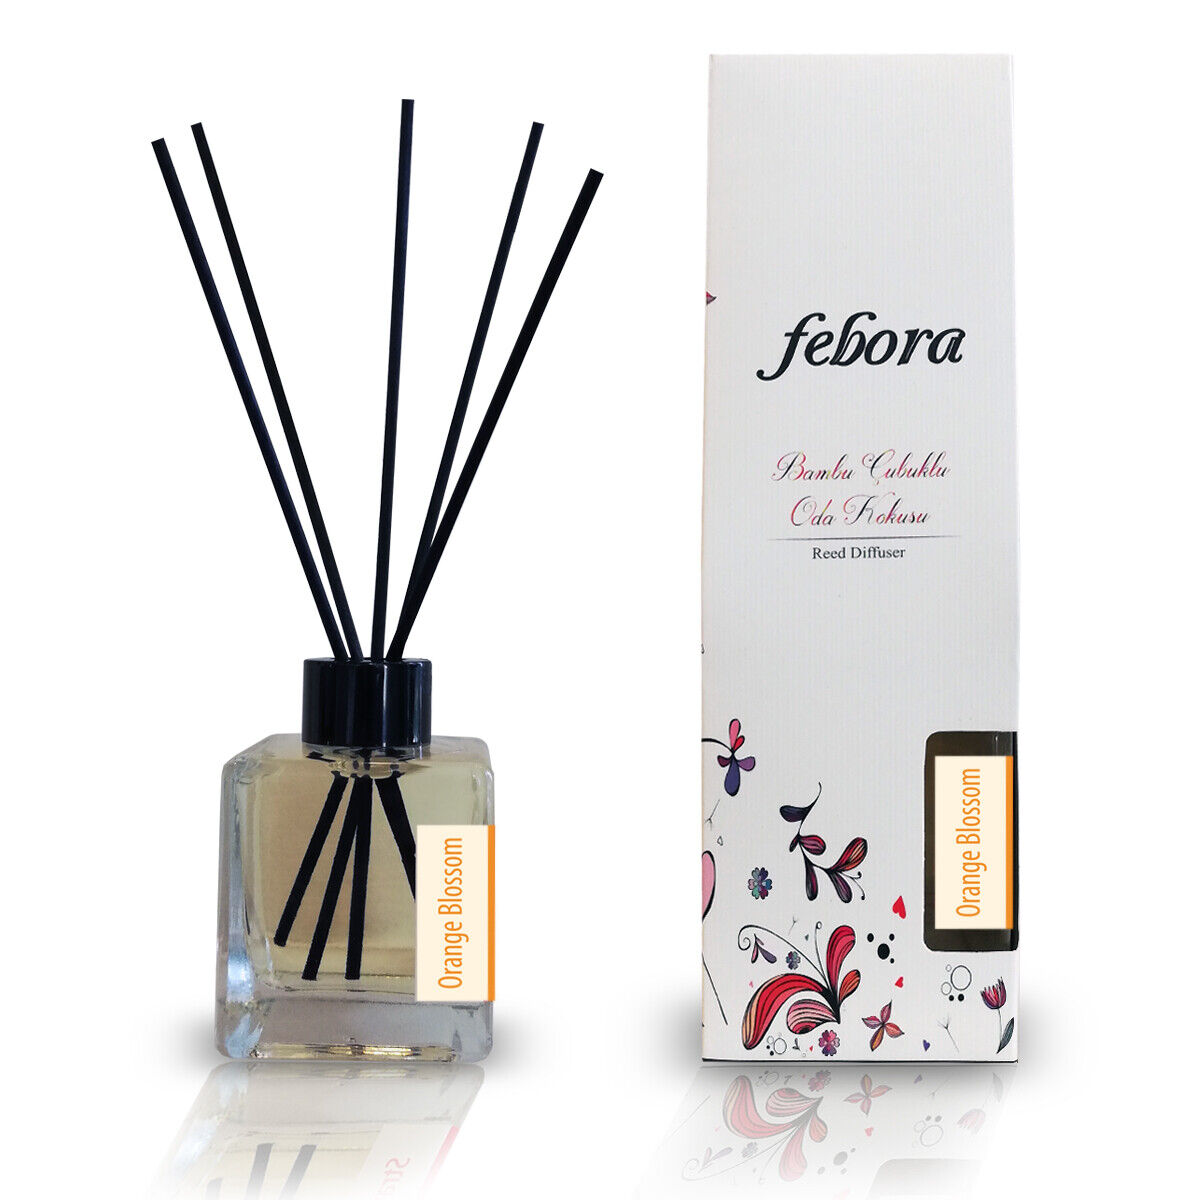 aromatic reed diffuser 3 4 oz 100ml